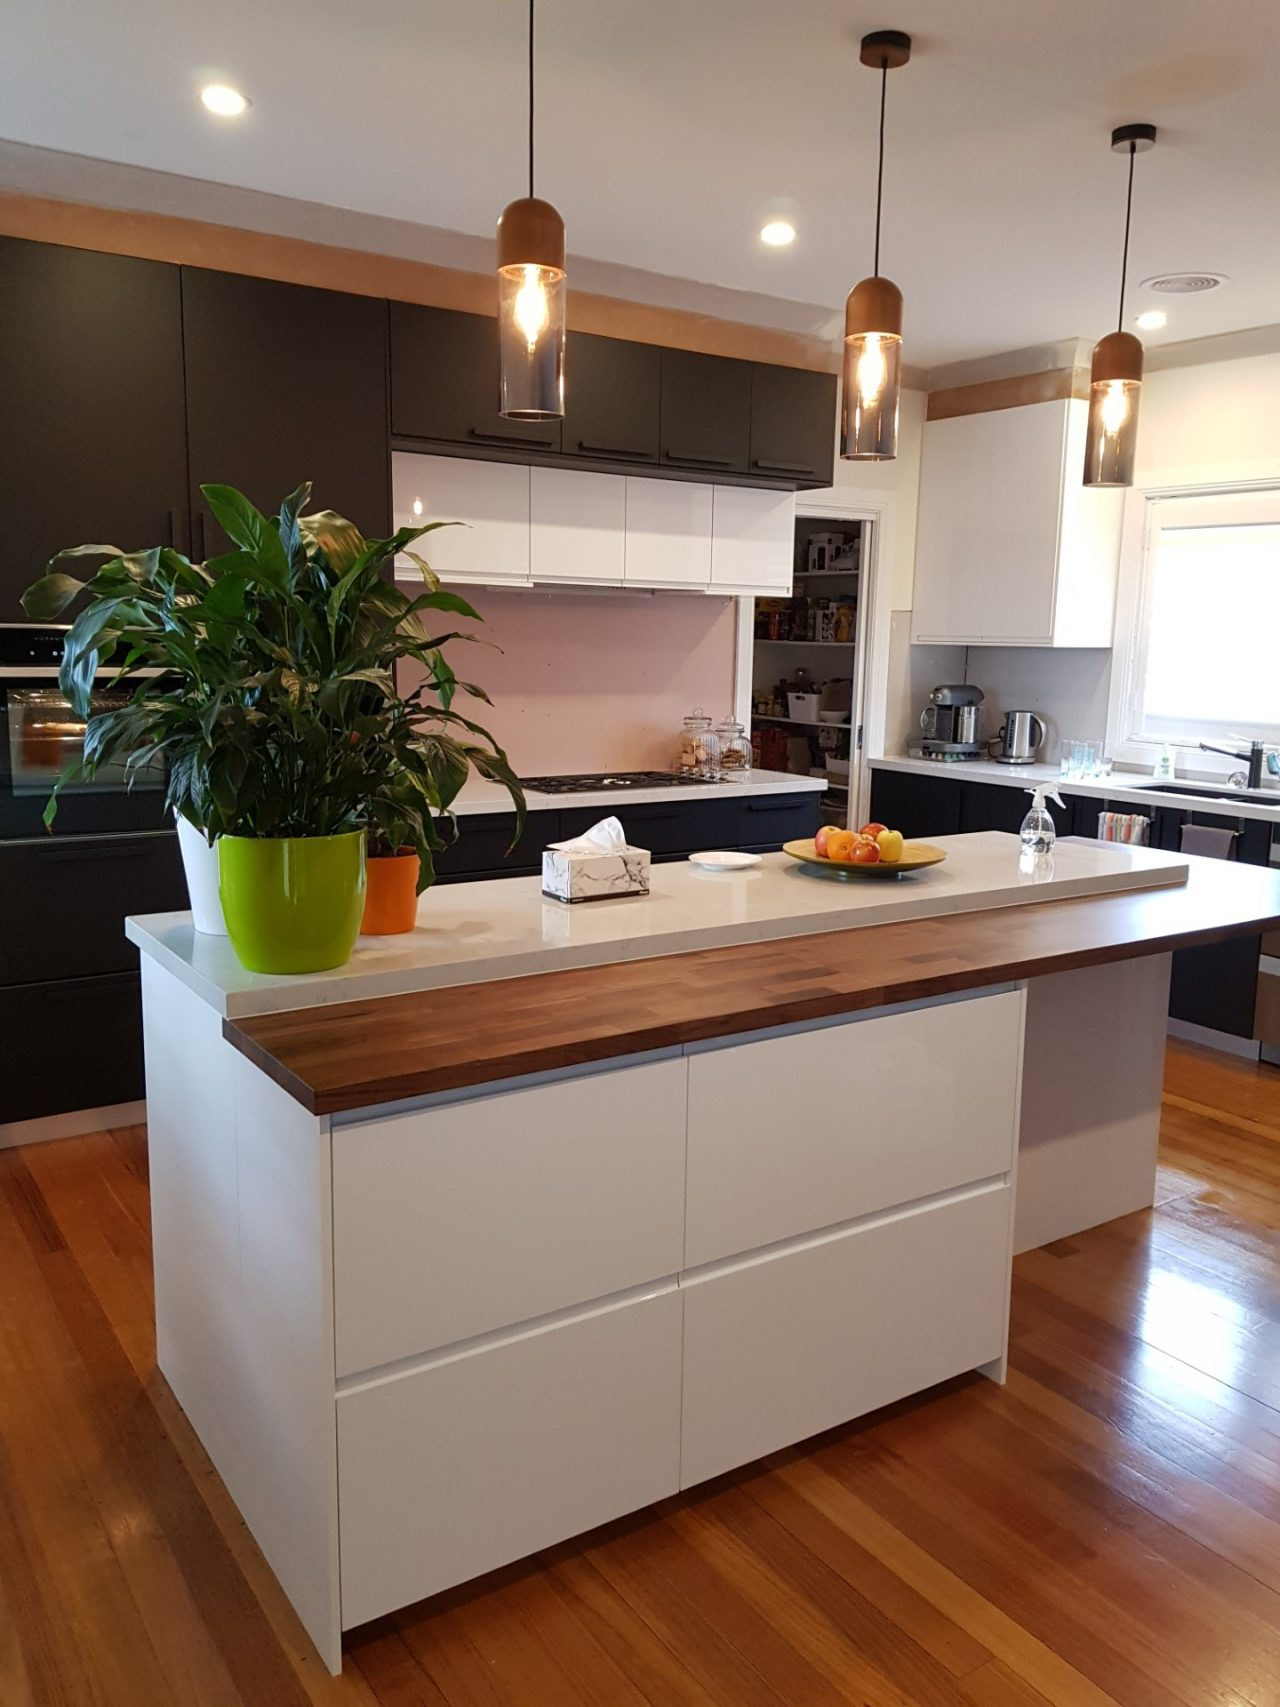 https://cankit.com.au/wp-content/uploads/2020/04/IKEA-Kitchen-Installation-Canberra-e1587698259345-1280x1707.jpg